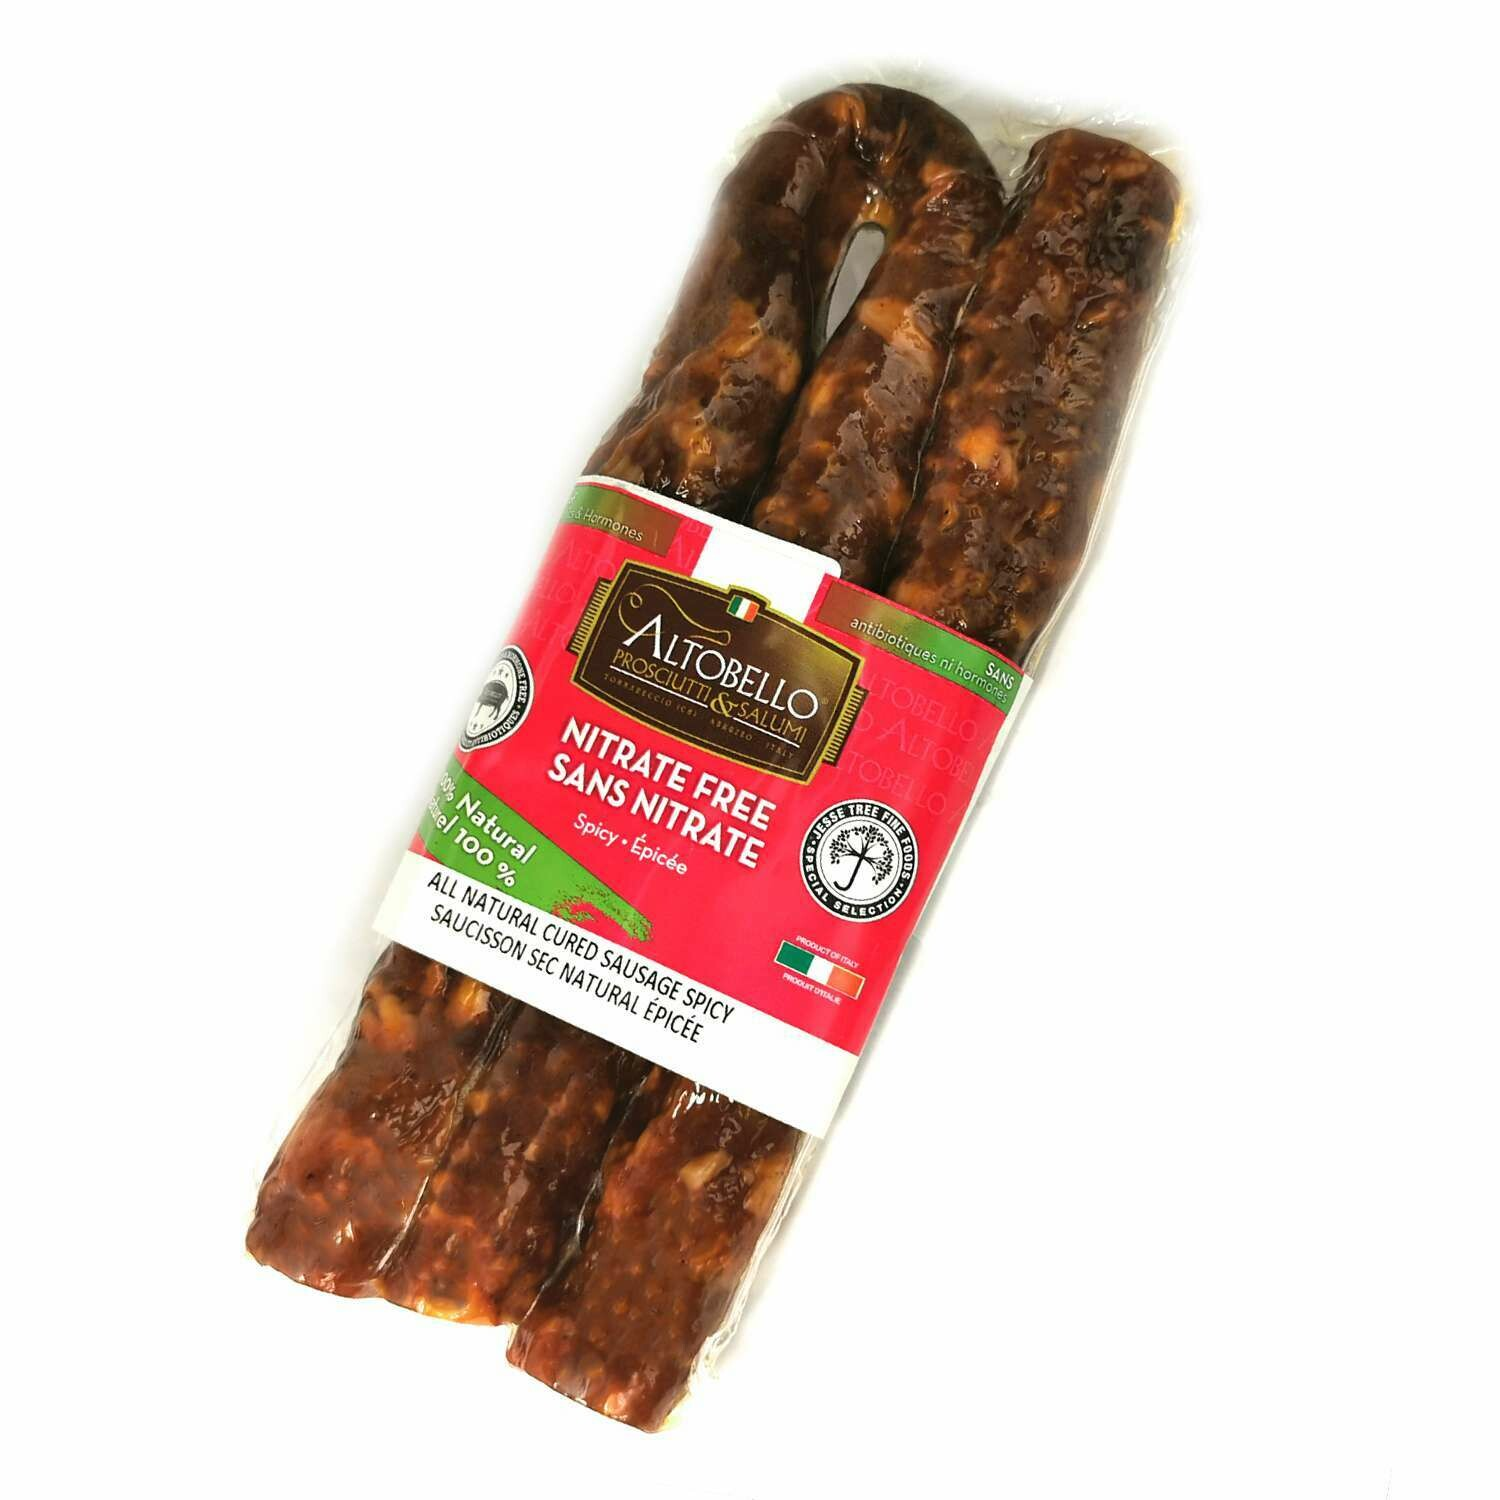 Altobello All Natural Spicy Sausage (280g)